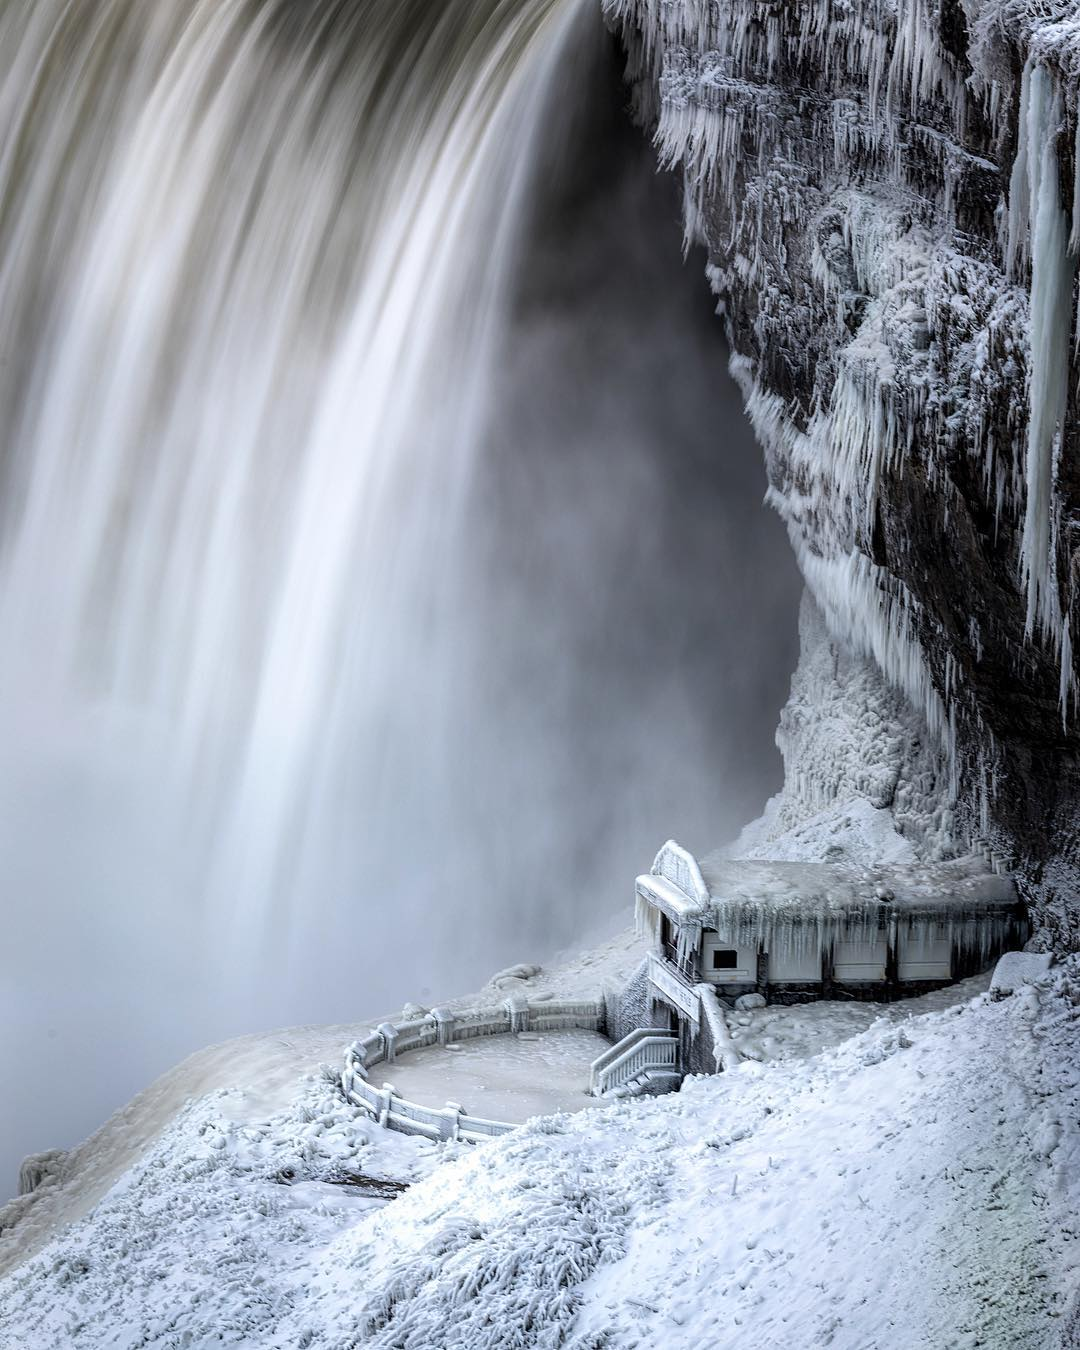 Guys, not to alarm anyone, but the Canadian side of Niagara Falls is an icy, winter wonderland right now   (via @punkodelish IG @Arjsun @AdamRDanni) https://t.co/56GNaOikjN